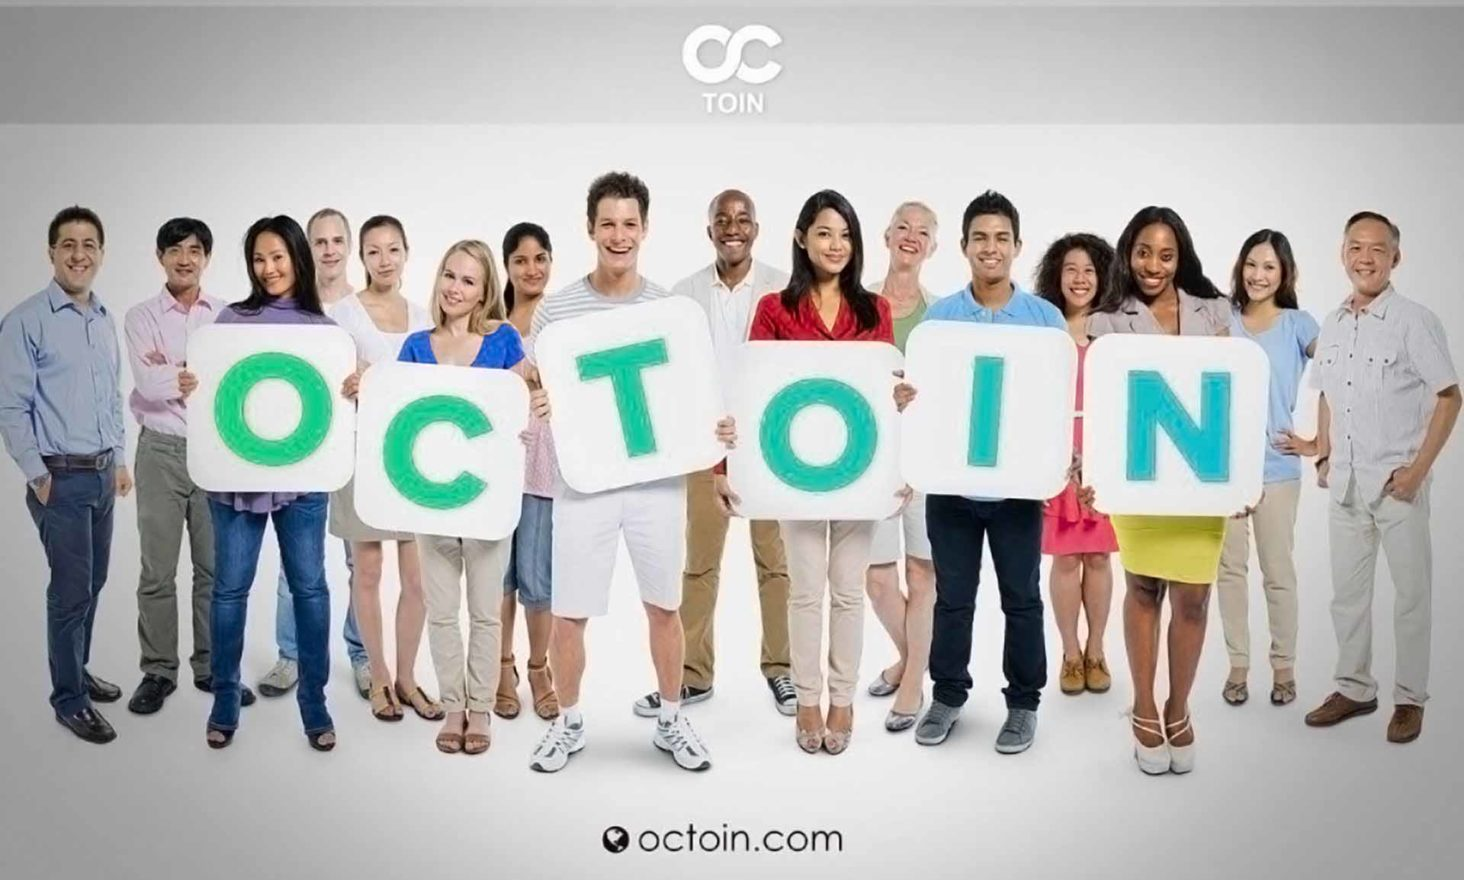 Start of Octoincoin Cryptocurrency! Octoin Project Successfully Keeps on Growing!